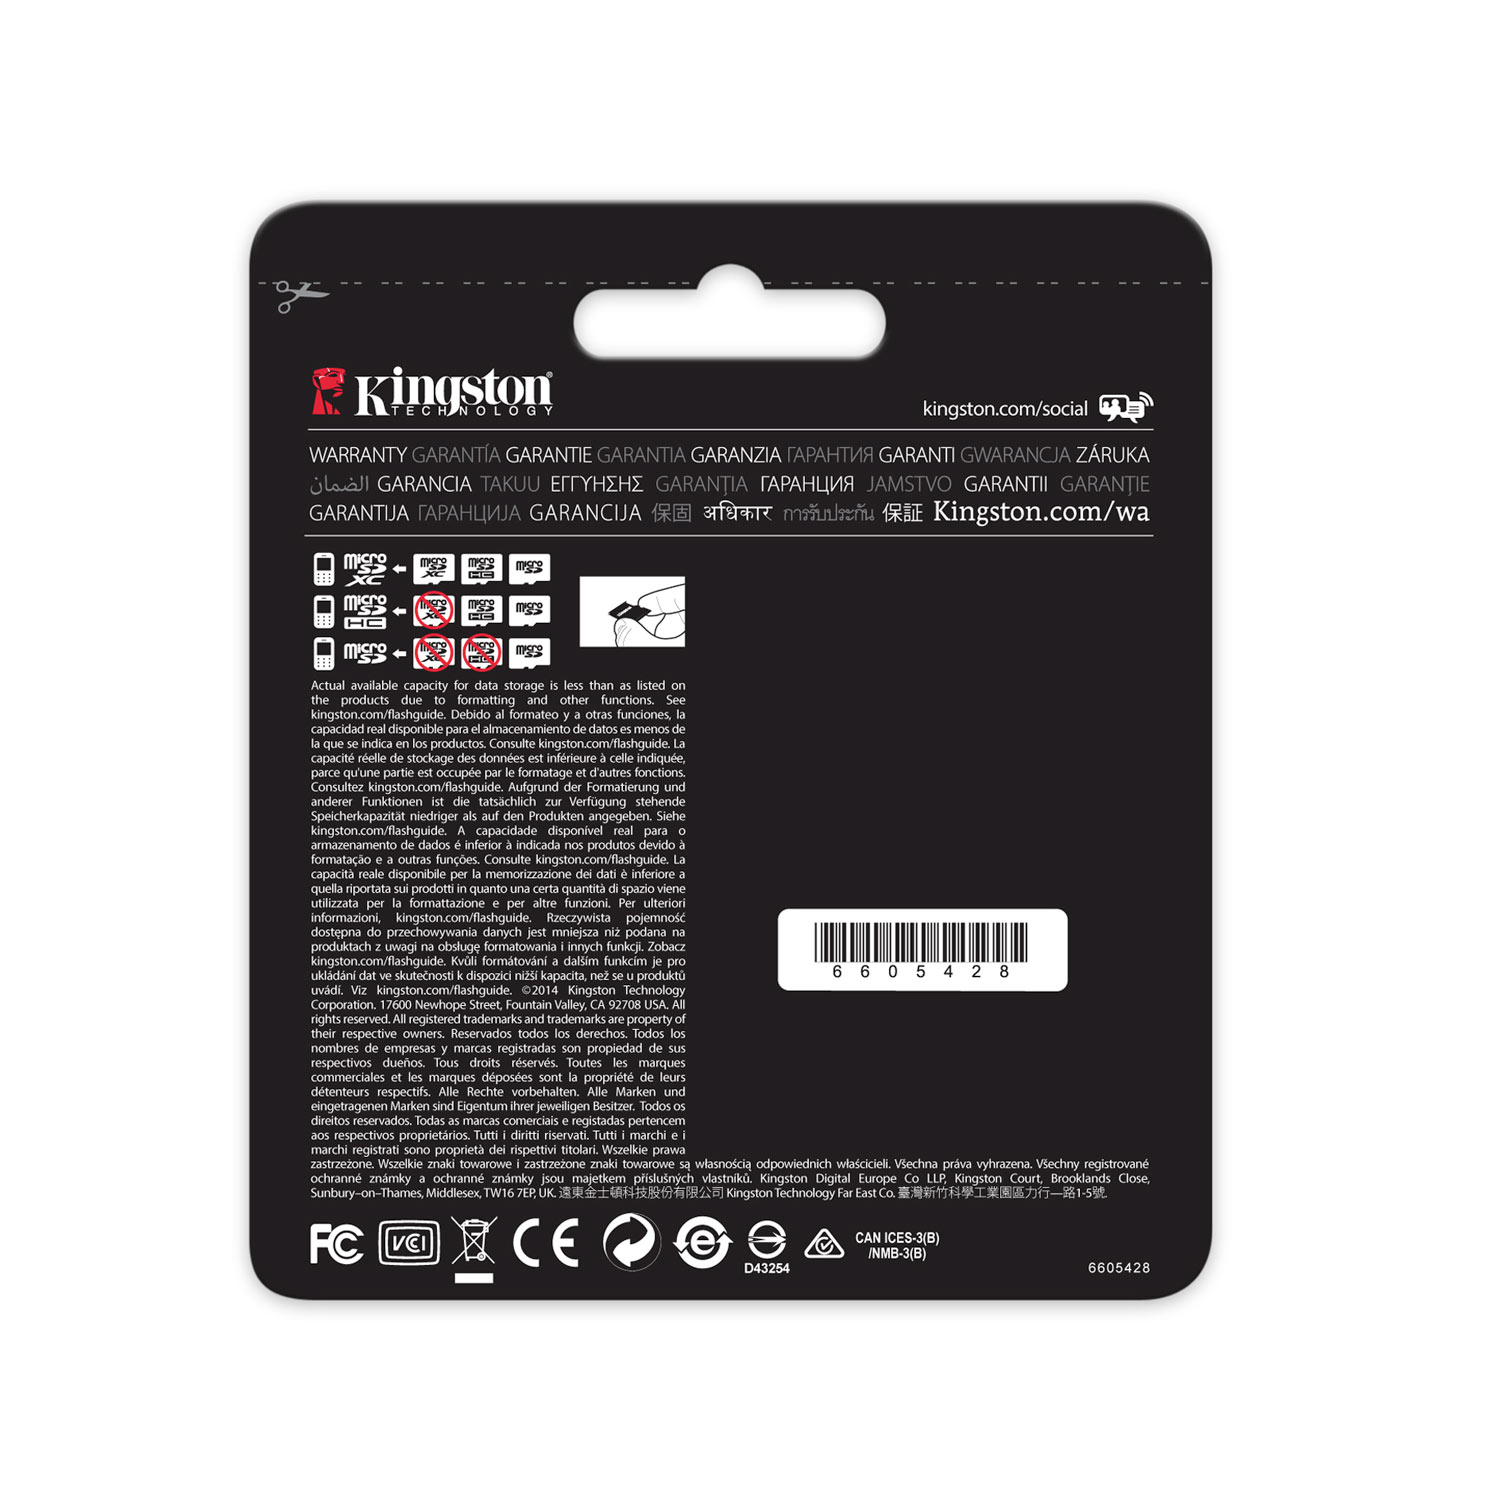 Kingston Micro SDHC 32Go UHS-I U3 + Adapt. - Carte mémoire - 1